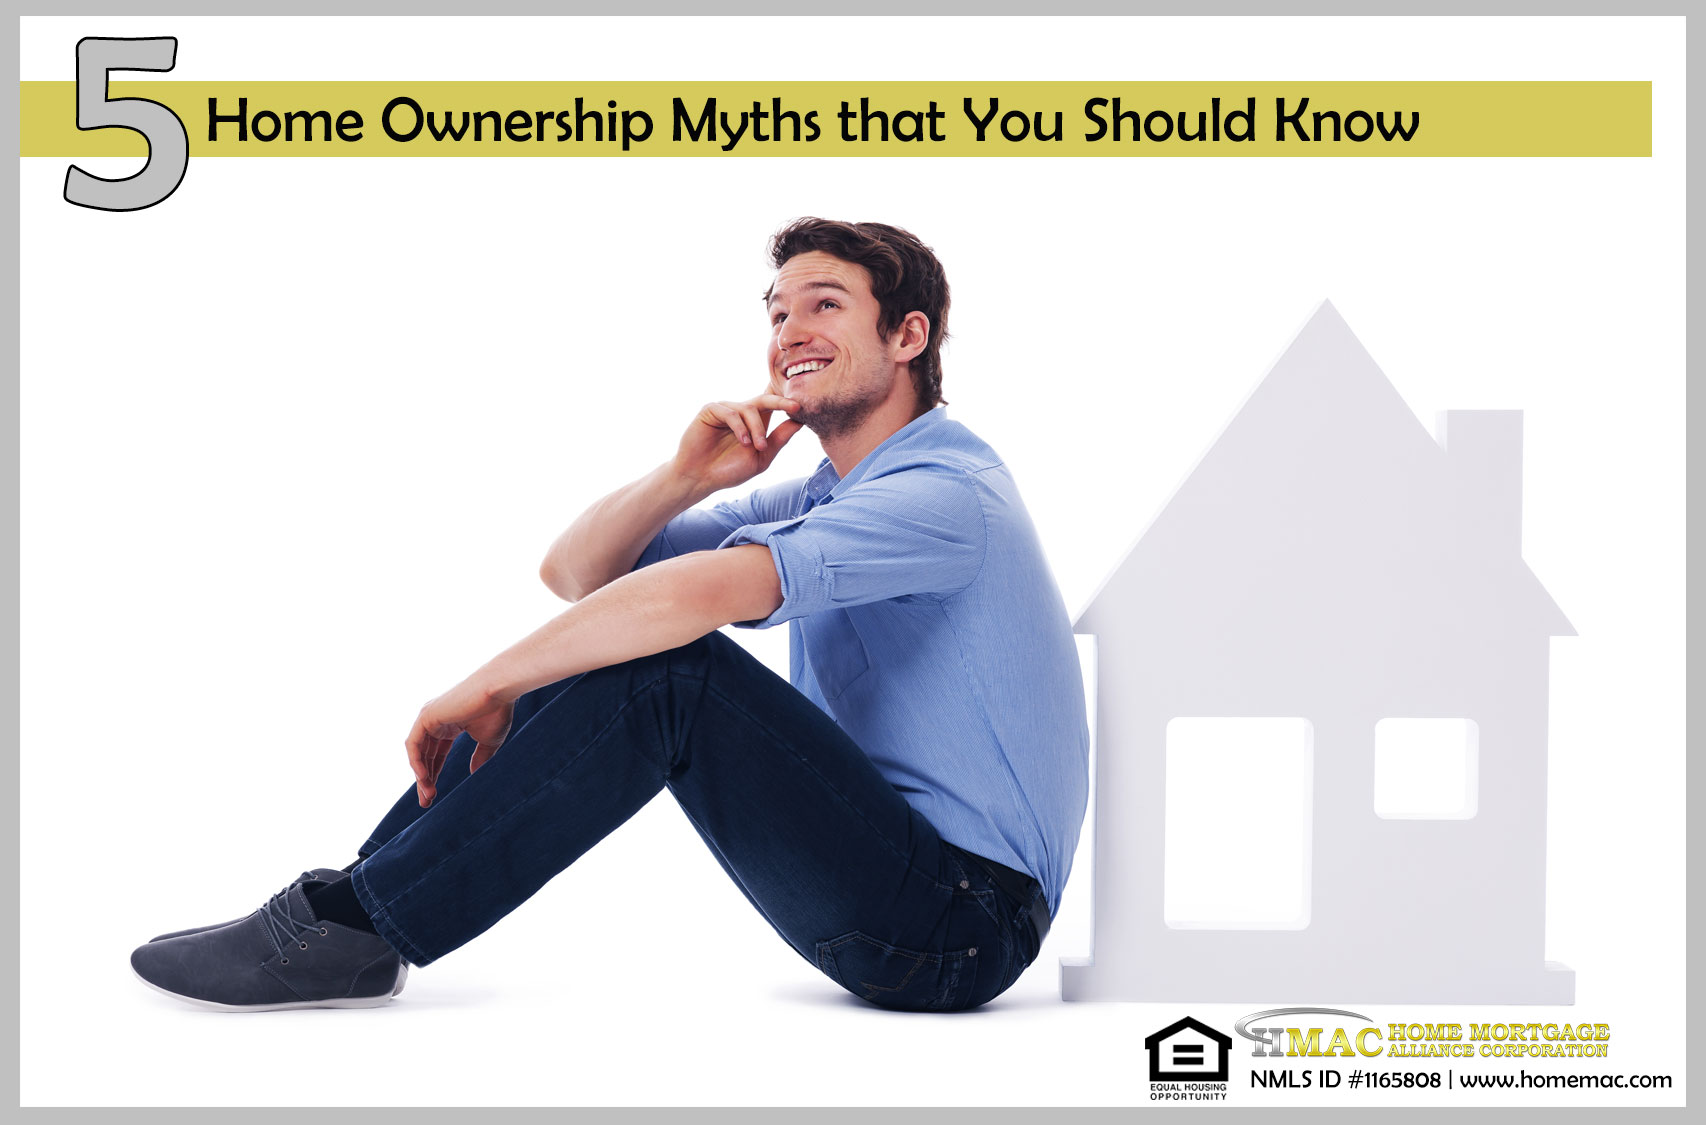 5 Home Ownership Myths